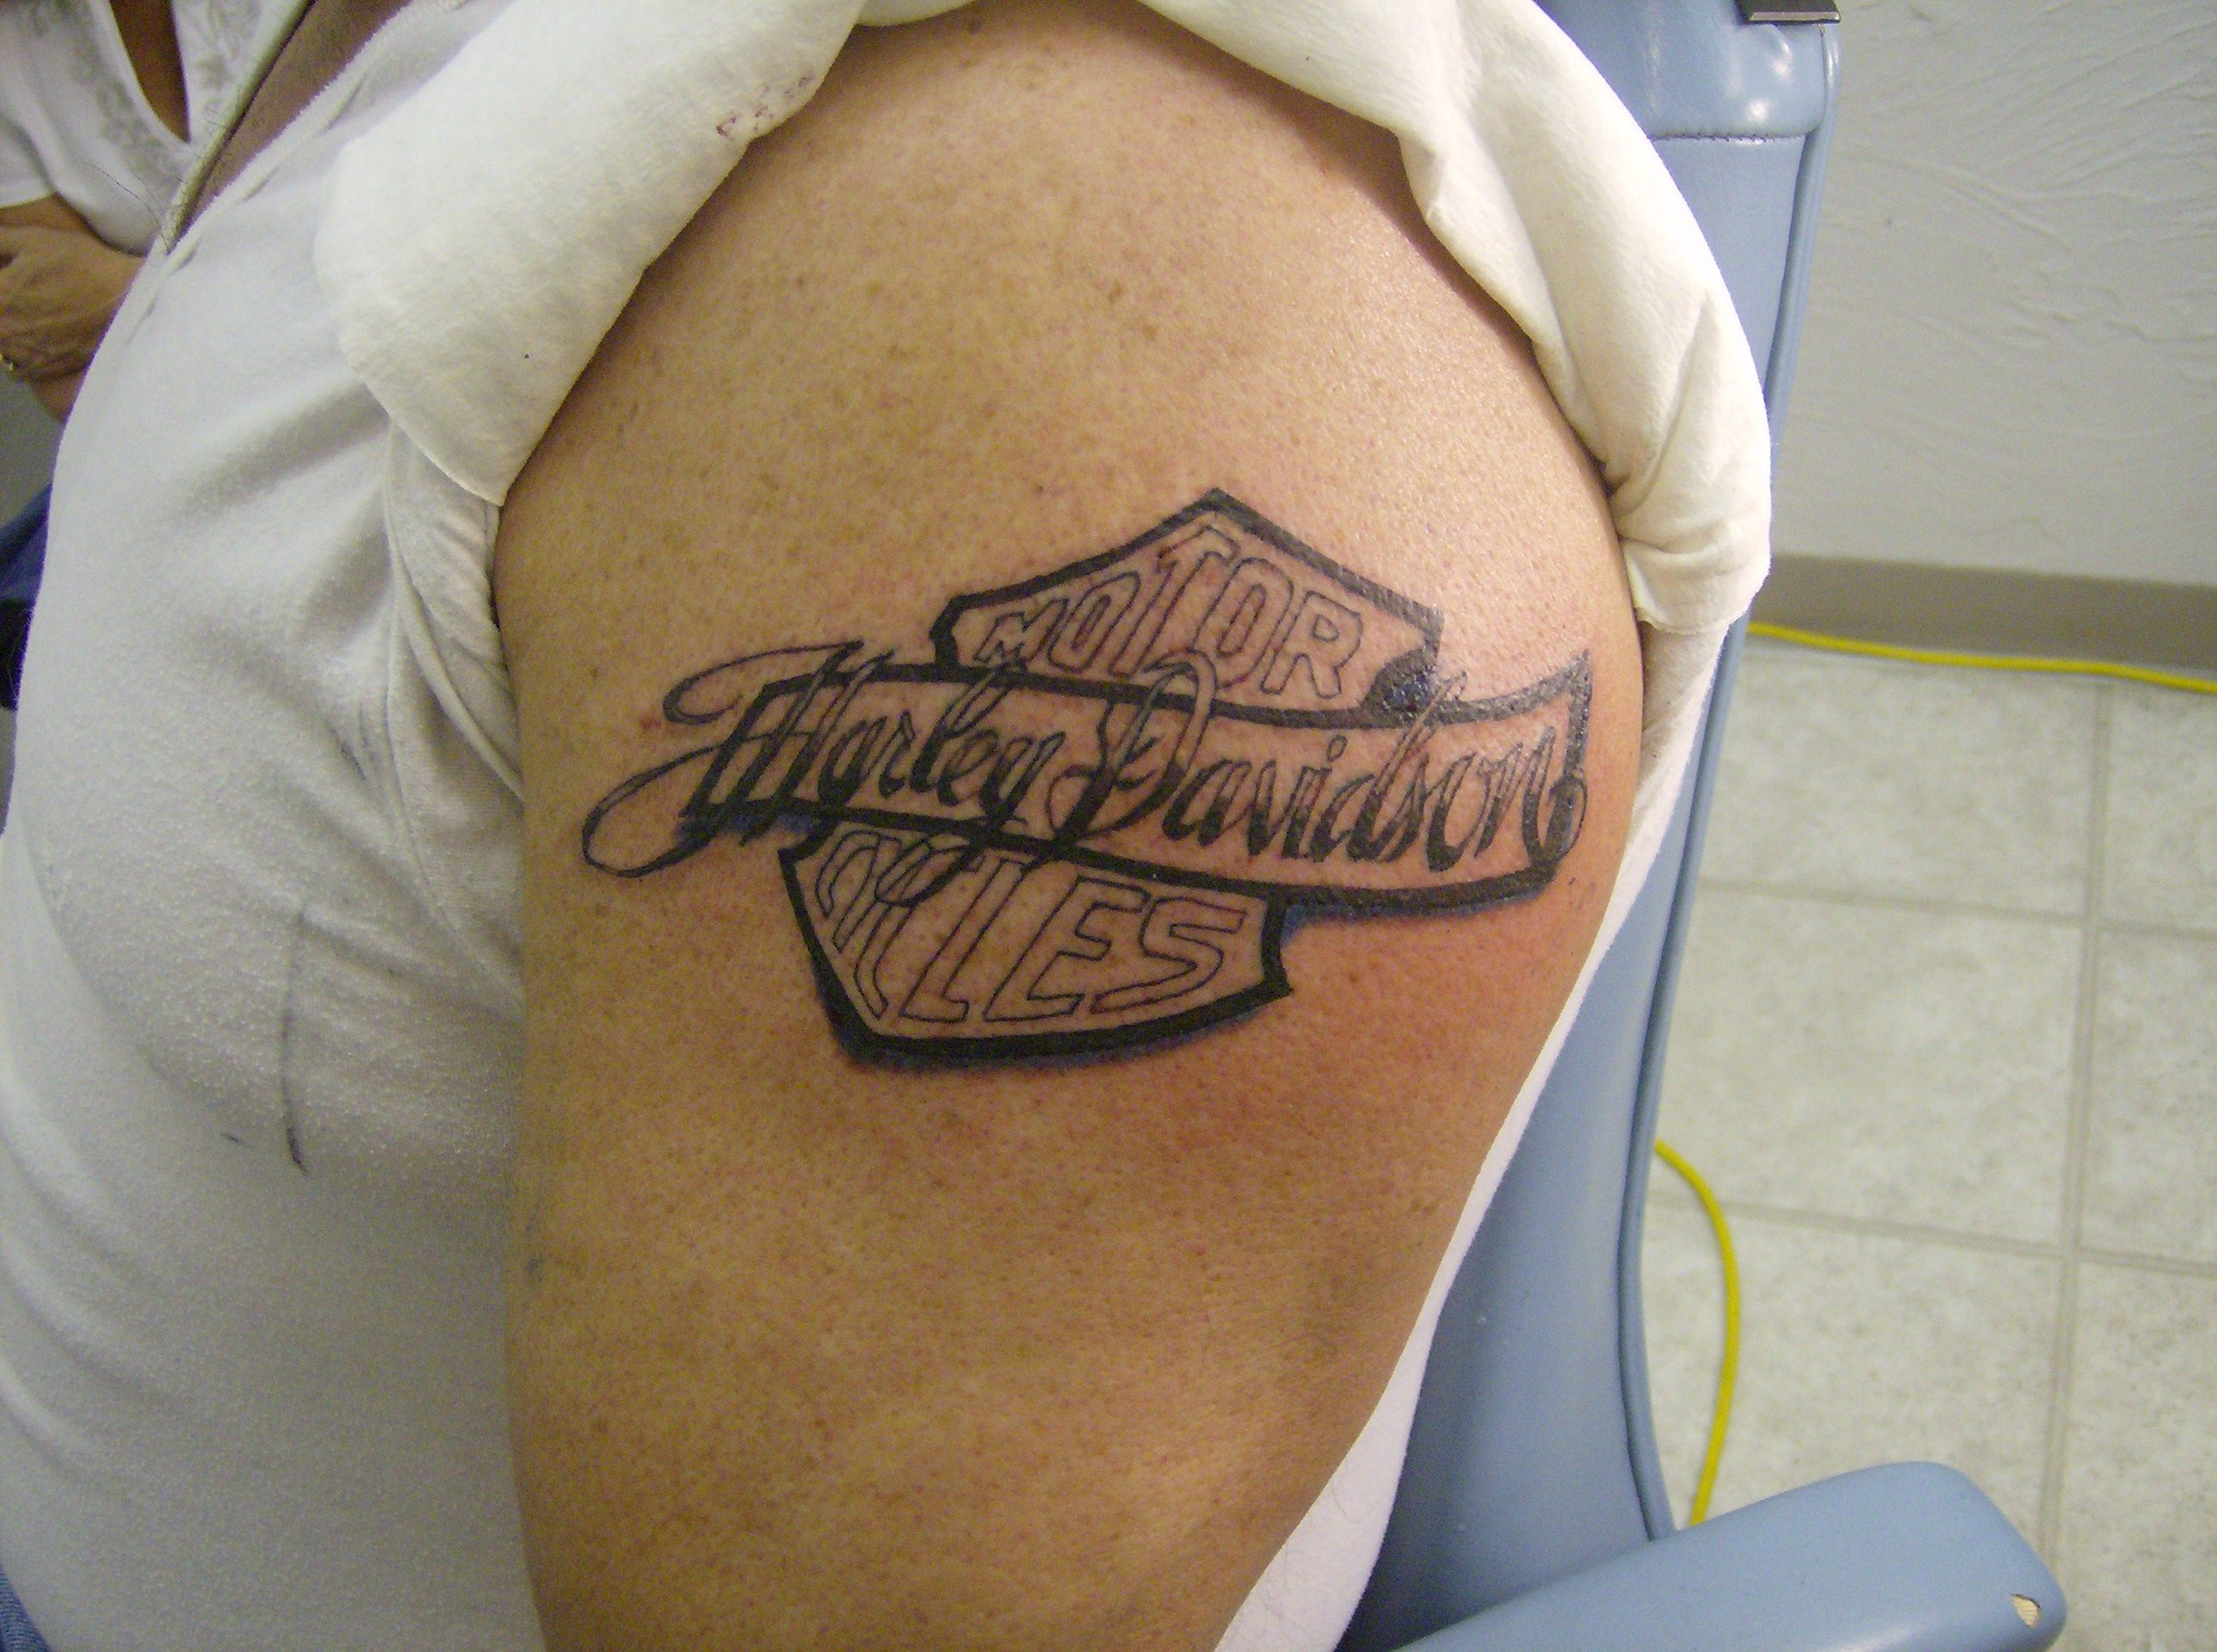 Motorcycle with biker tattoo - Motorcycle Tattoos For Girls Biker Tattoos